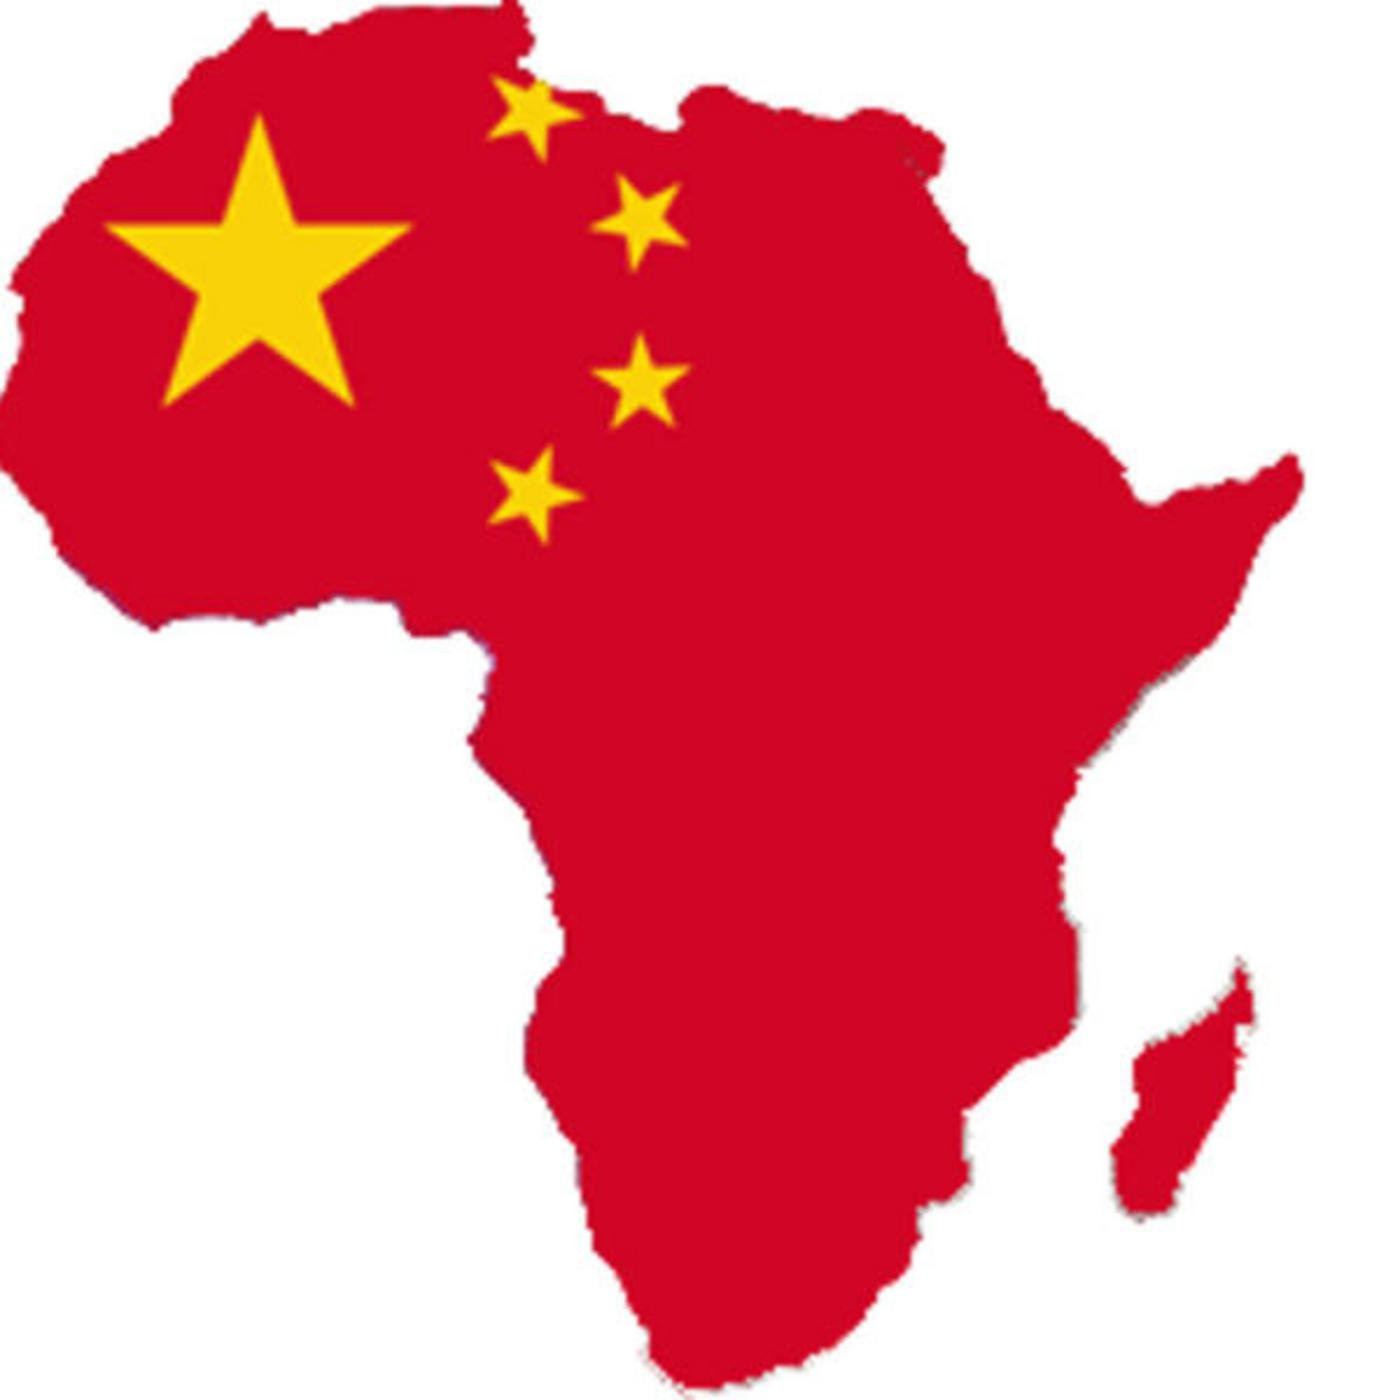 South Africa & China, well, it's complicated